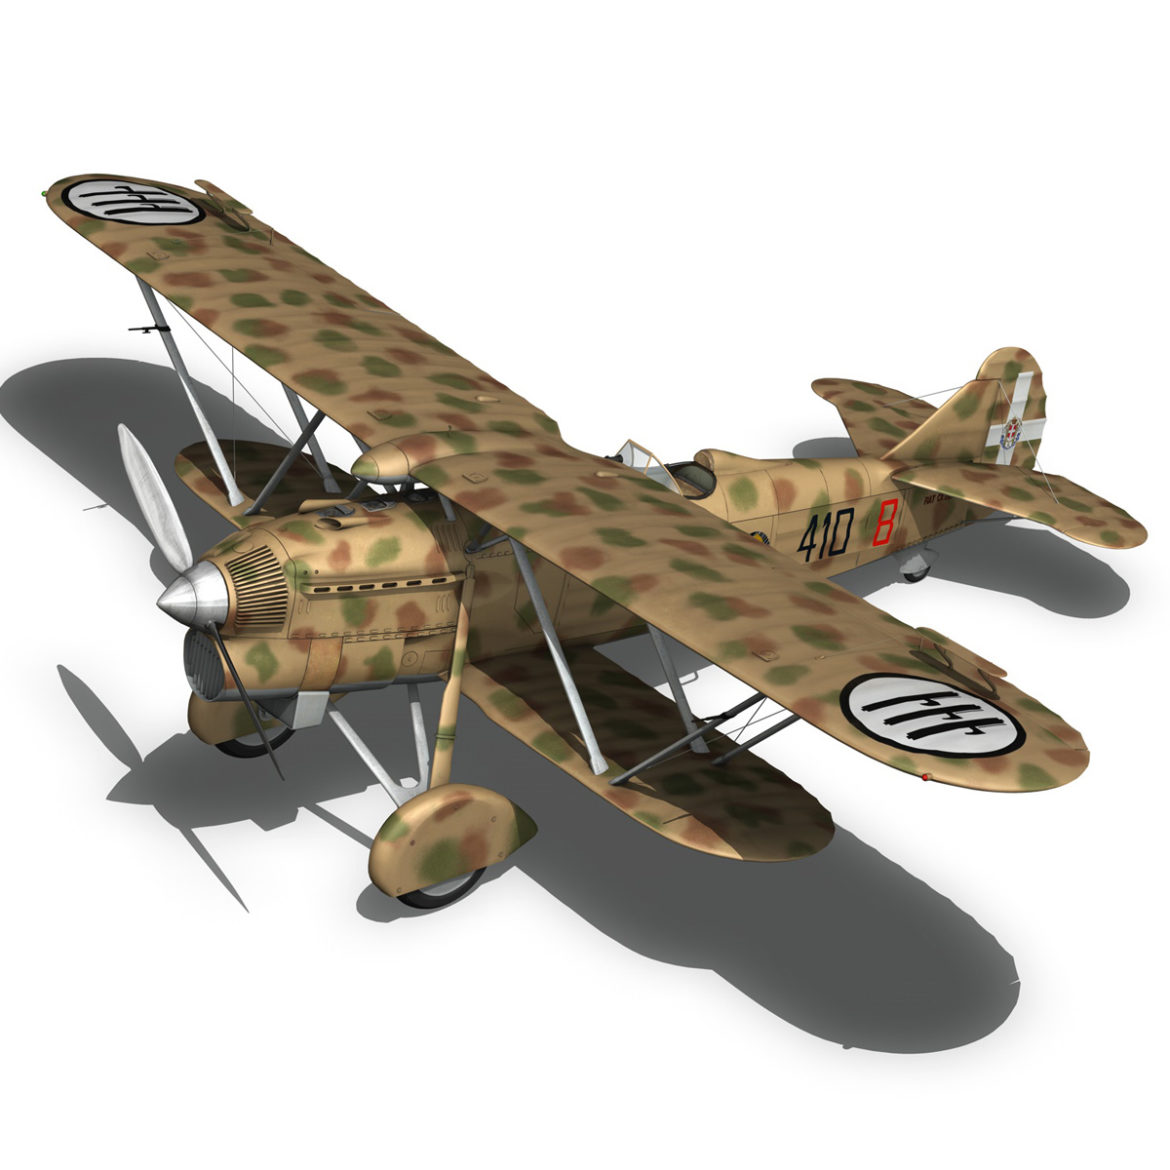 fiat cr.32 – italy airforce – 410 squadriglia 3d model fbx c4d lwo obj 307556